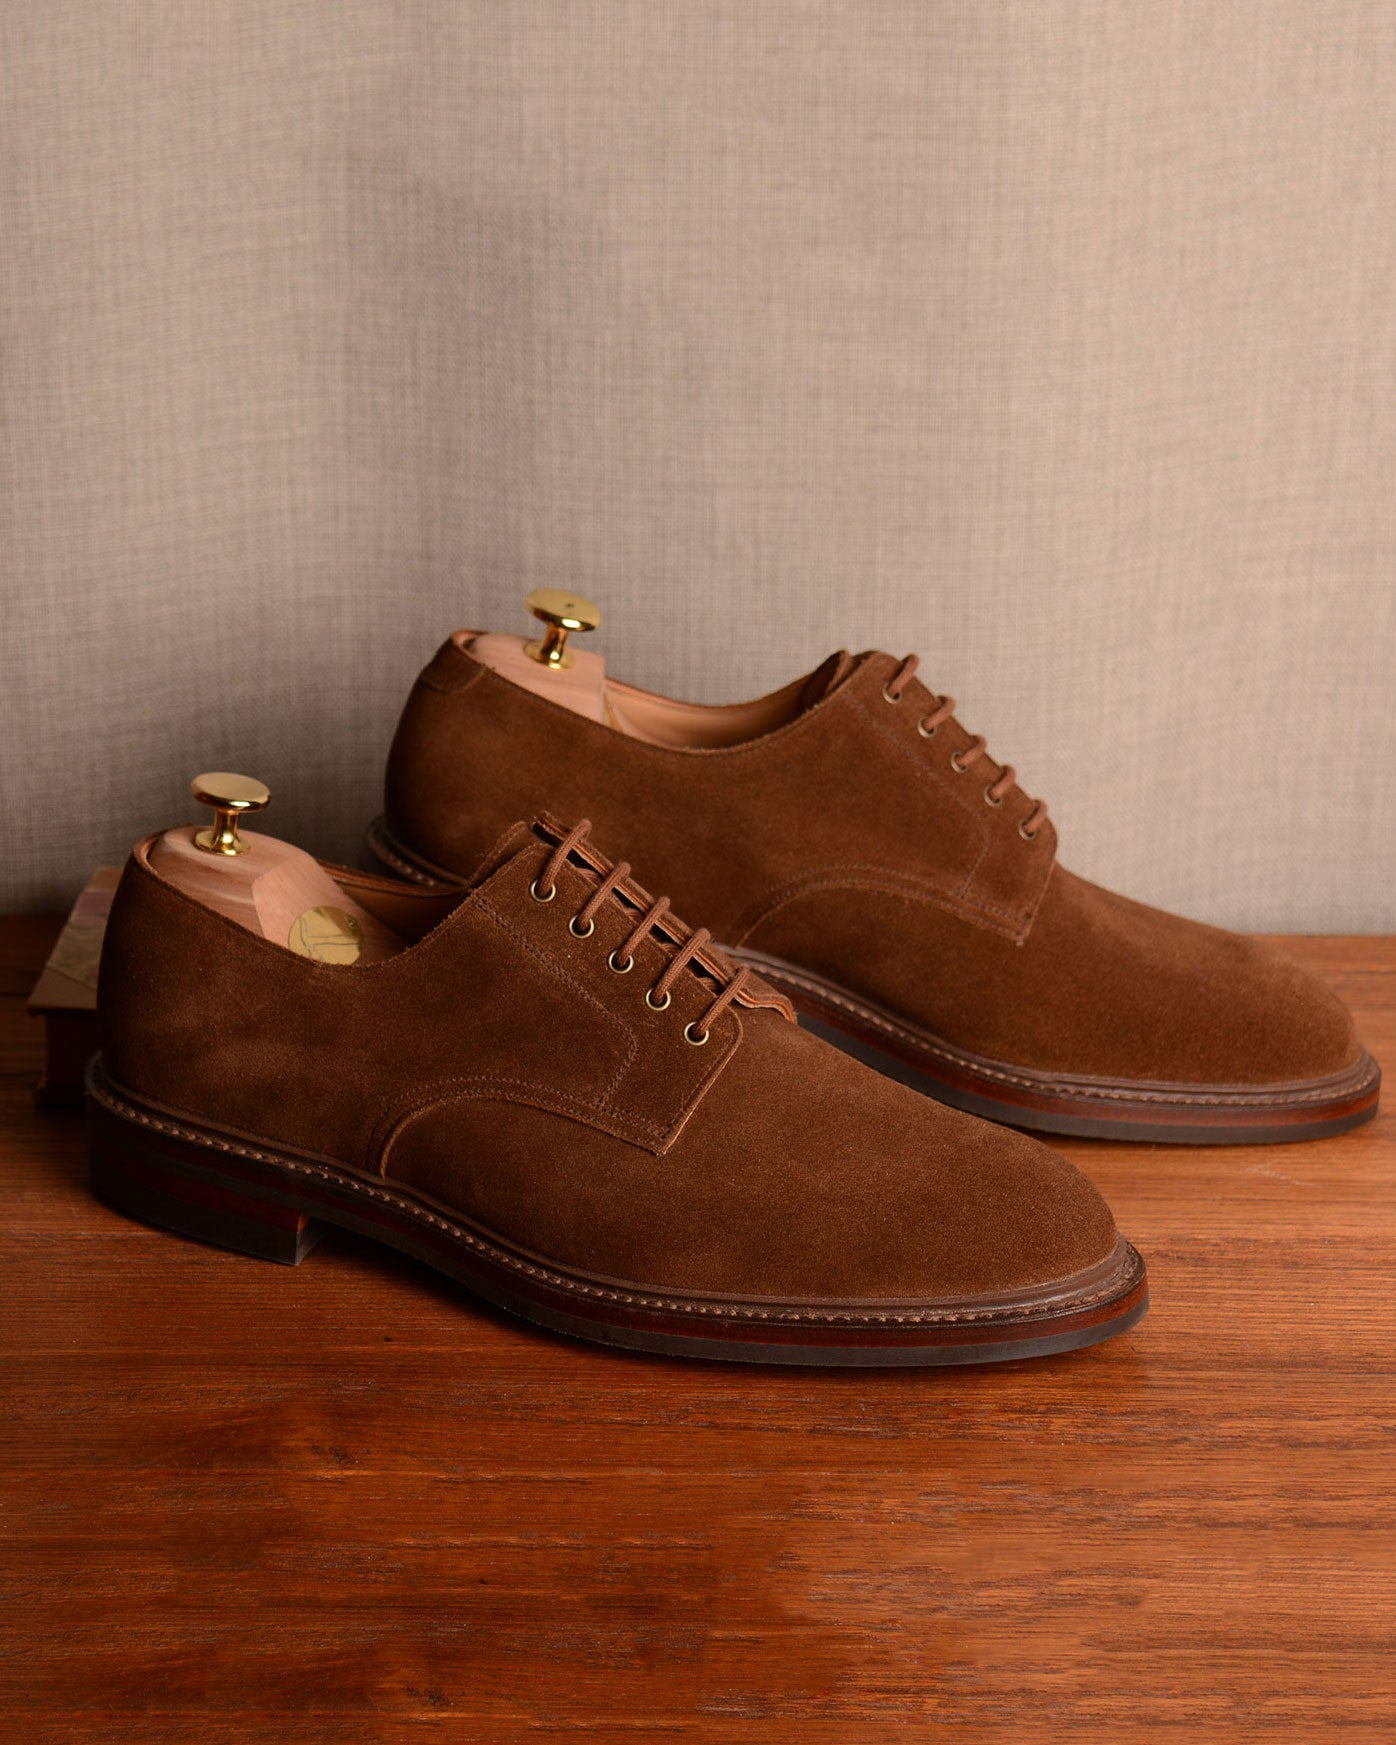 Crockett & Jones Sedgemoor - Snuff Suede